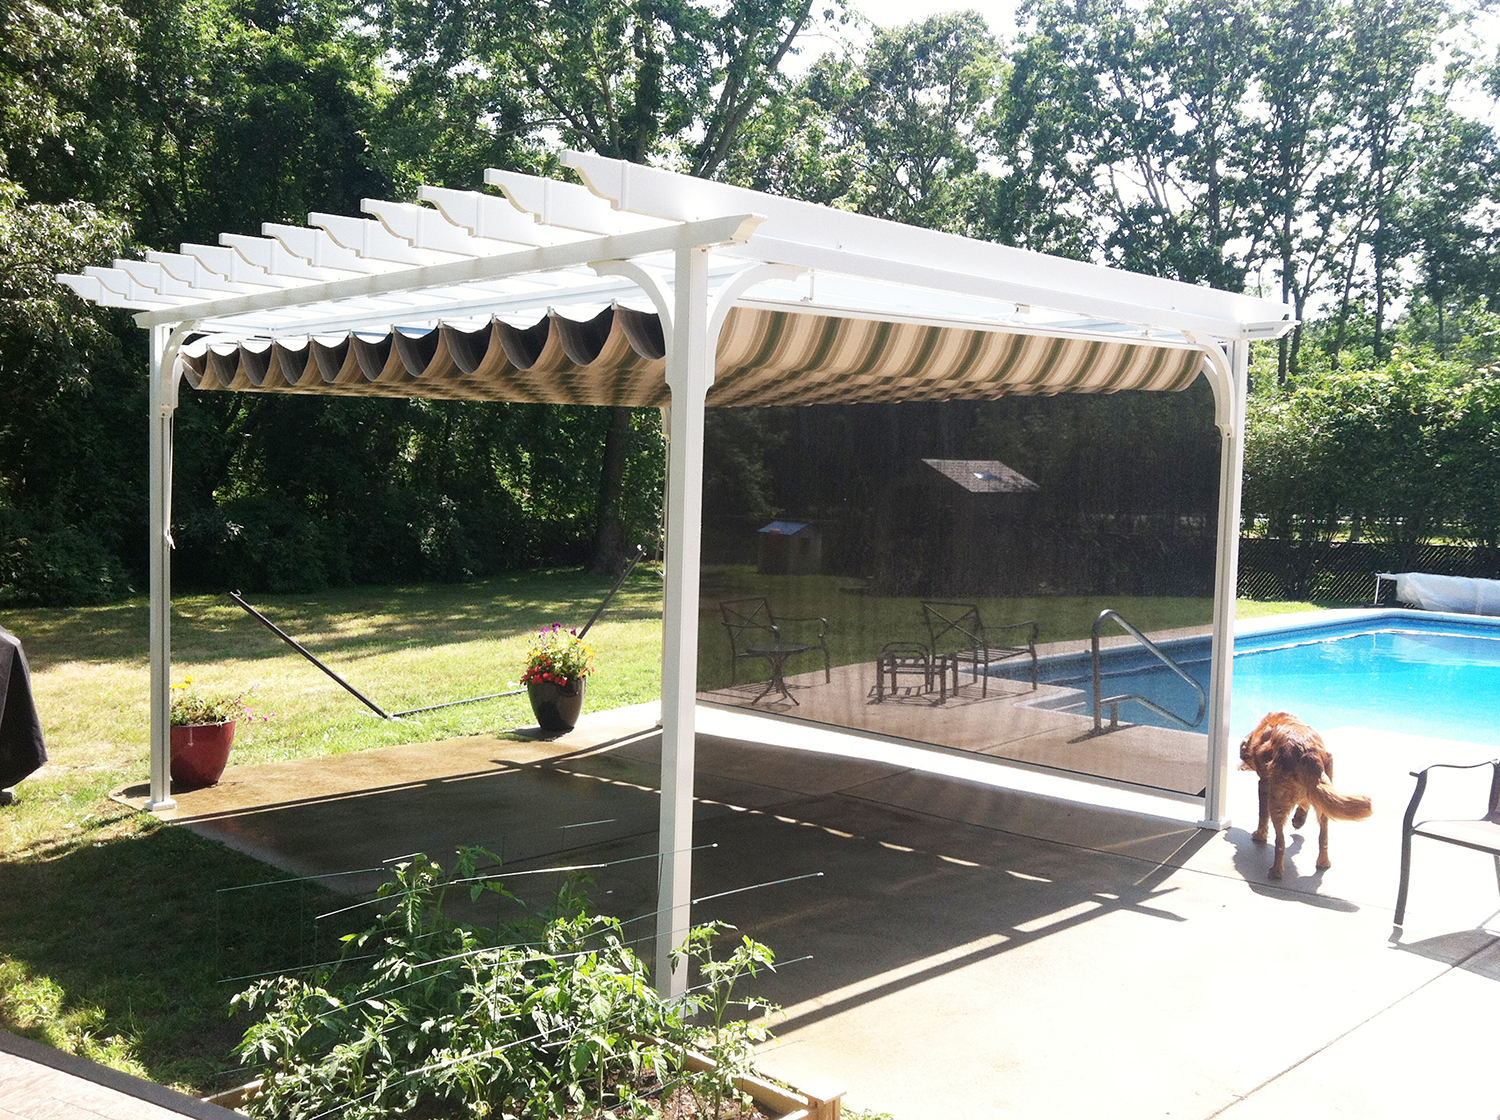 What Is A Retractable Awning, And Is It The Right Shade Choice For My Outdoor Space?